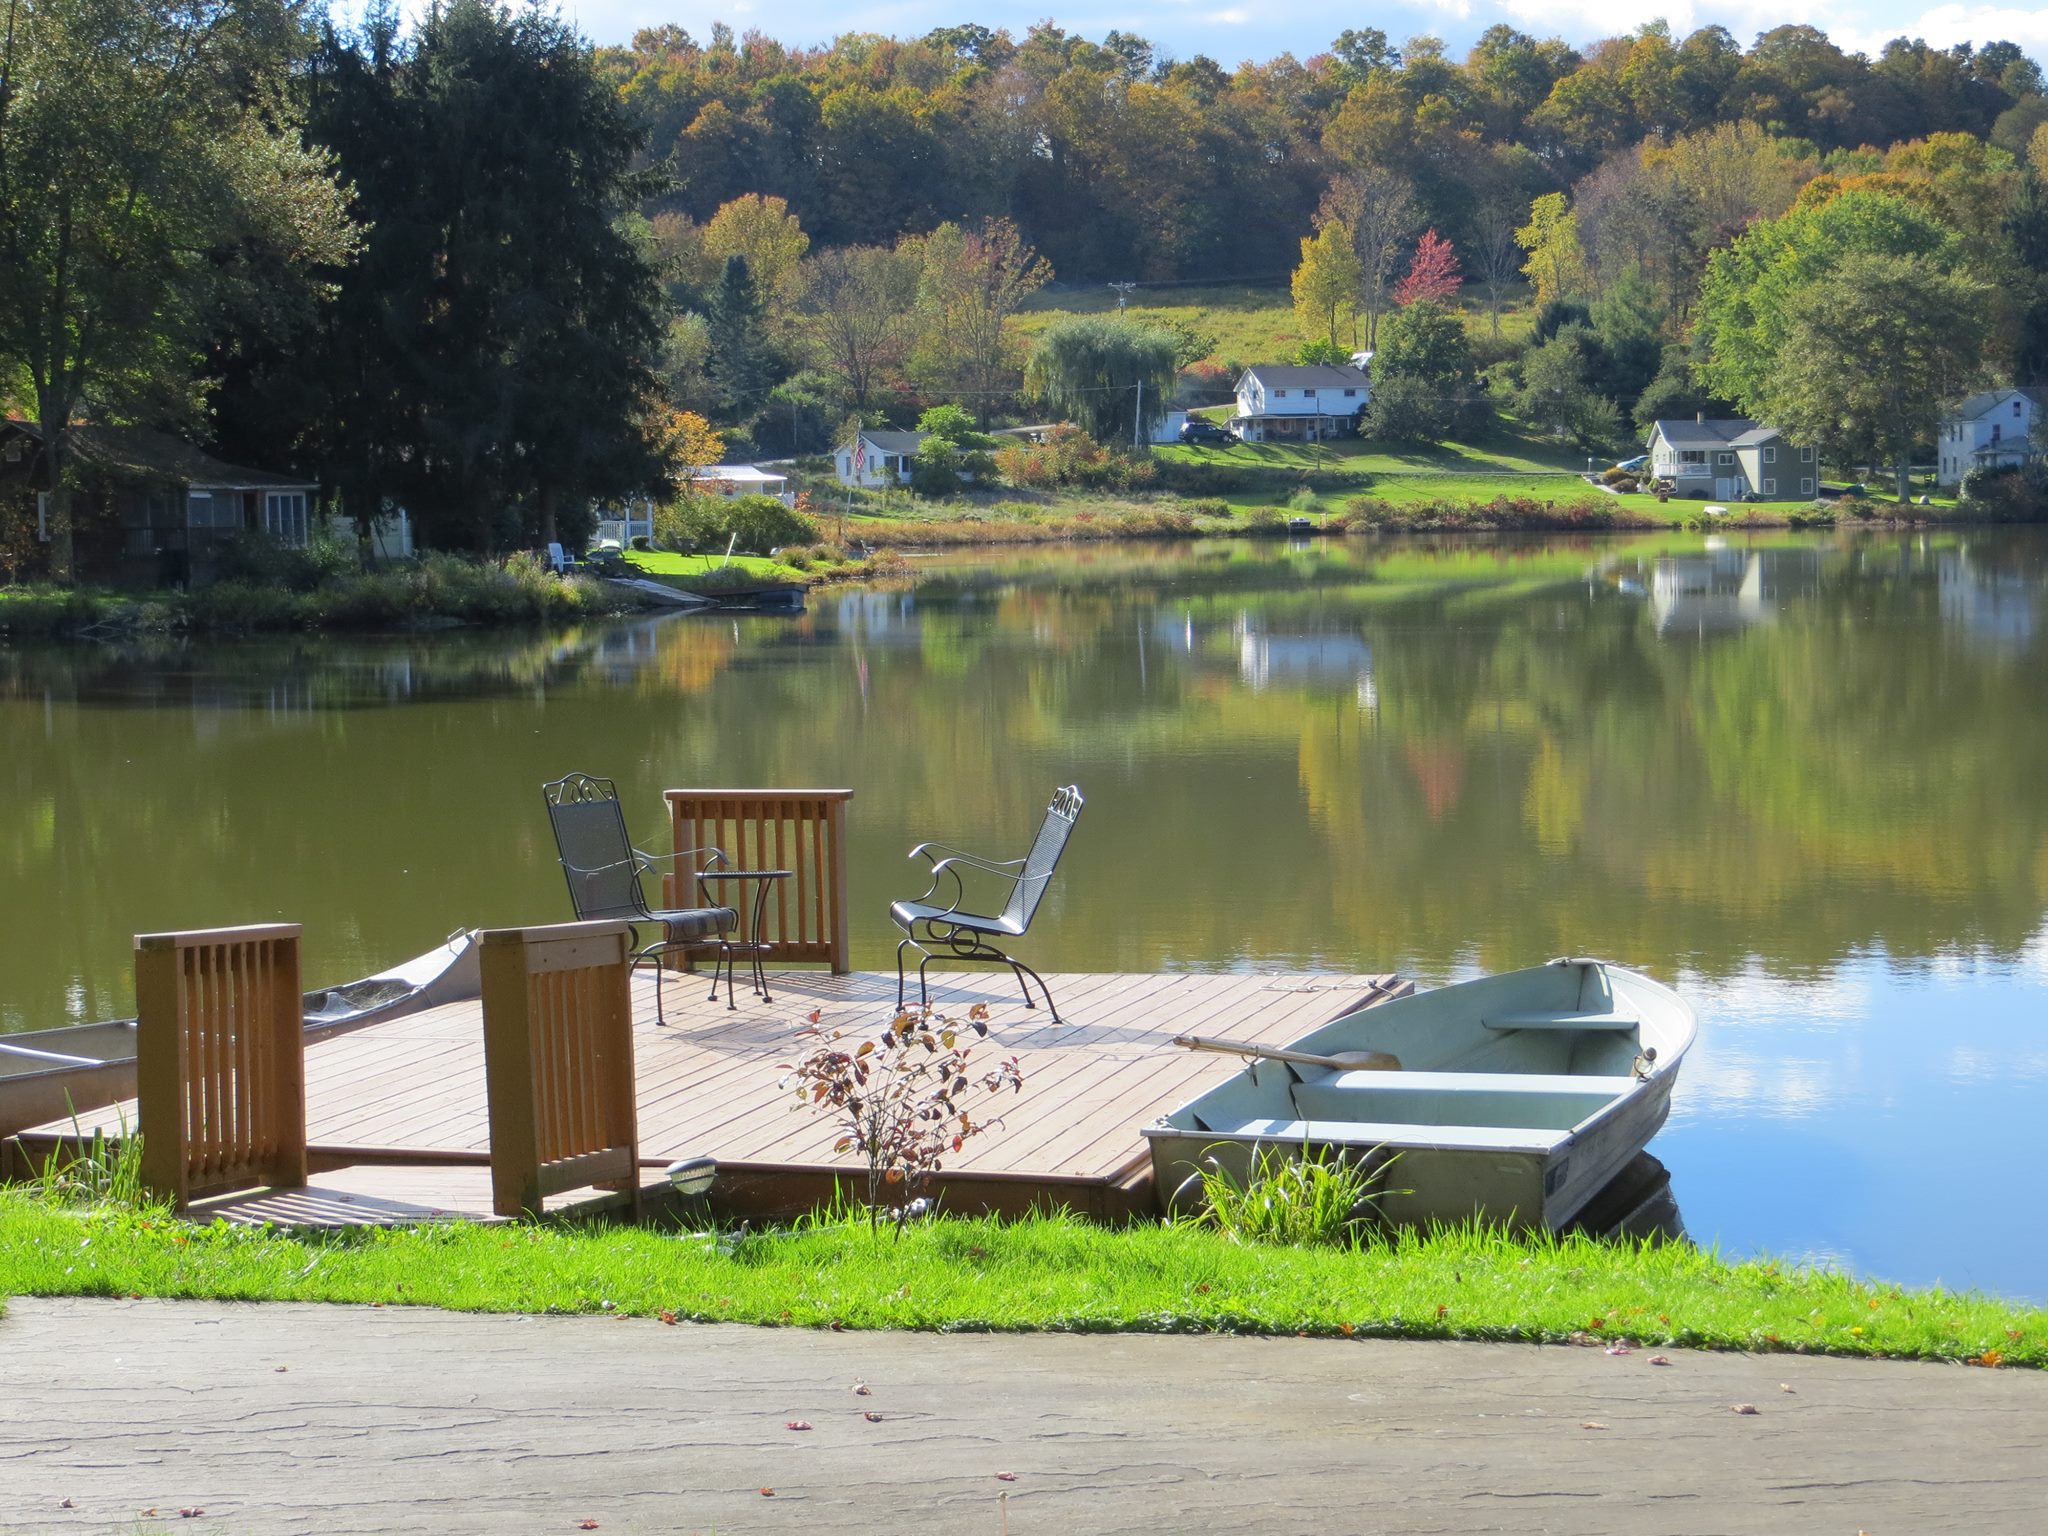 Dock on a lake in Susquehanna county.